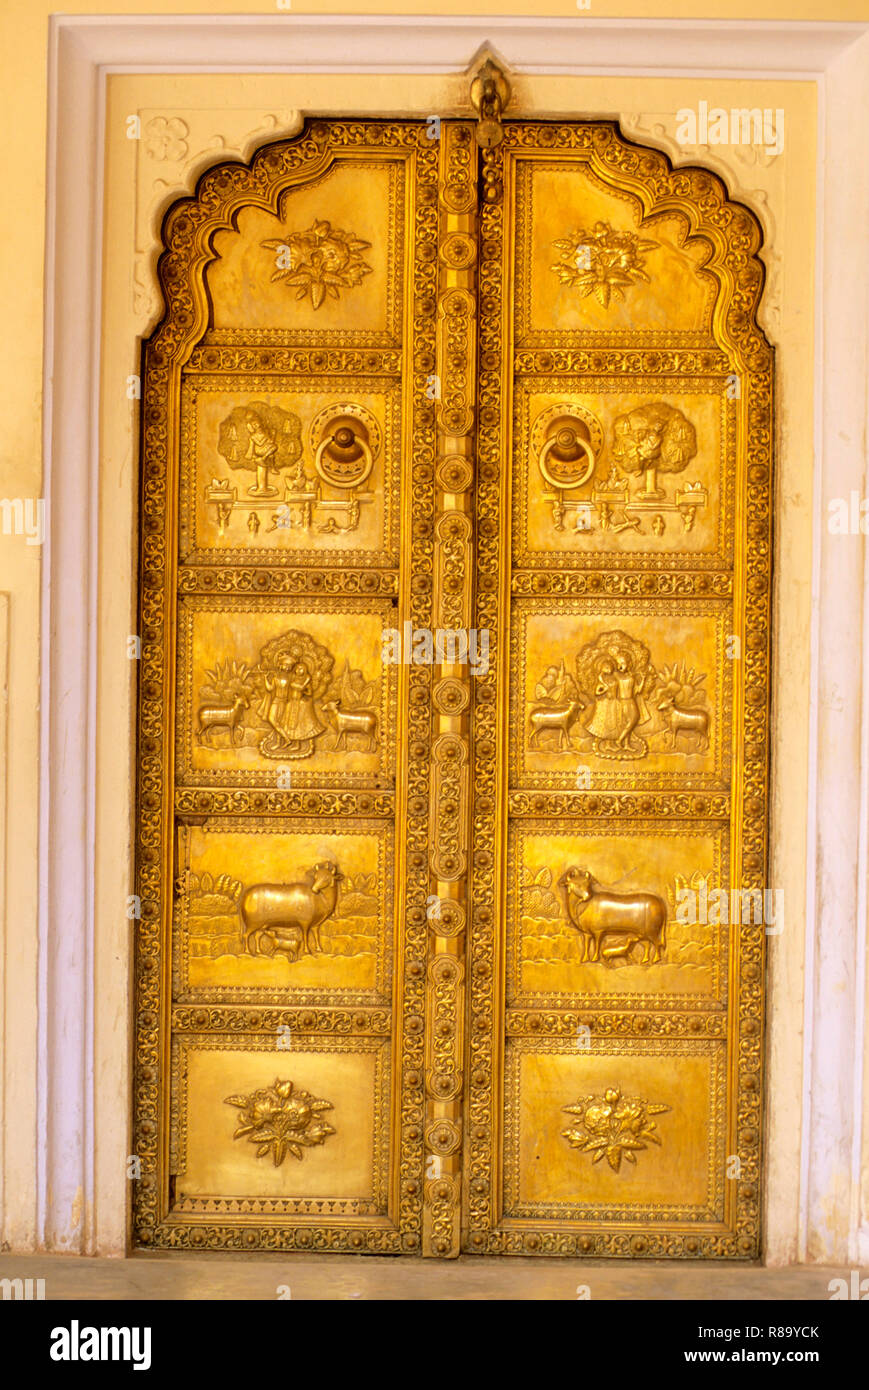 richly Embossed brass panale door, city palace, jaipur, rajasthan, india - Stock Image